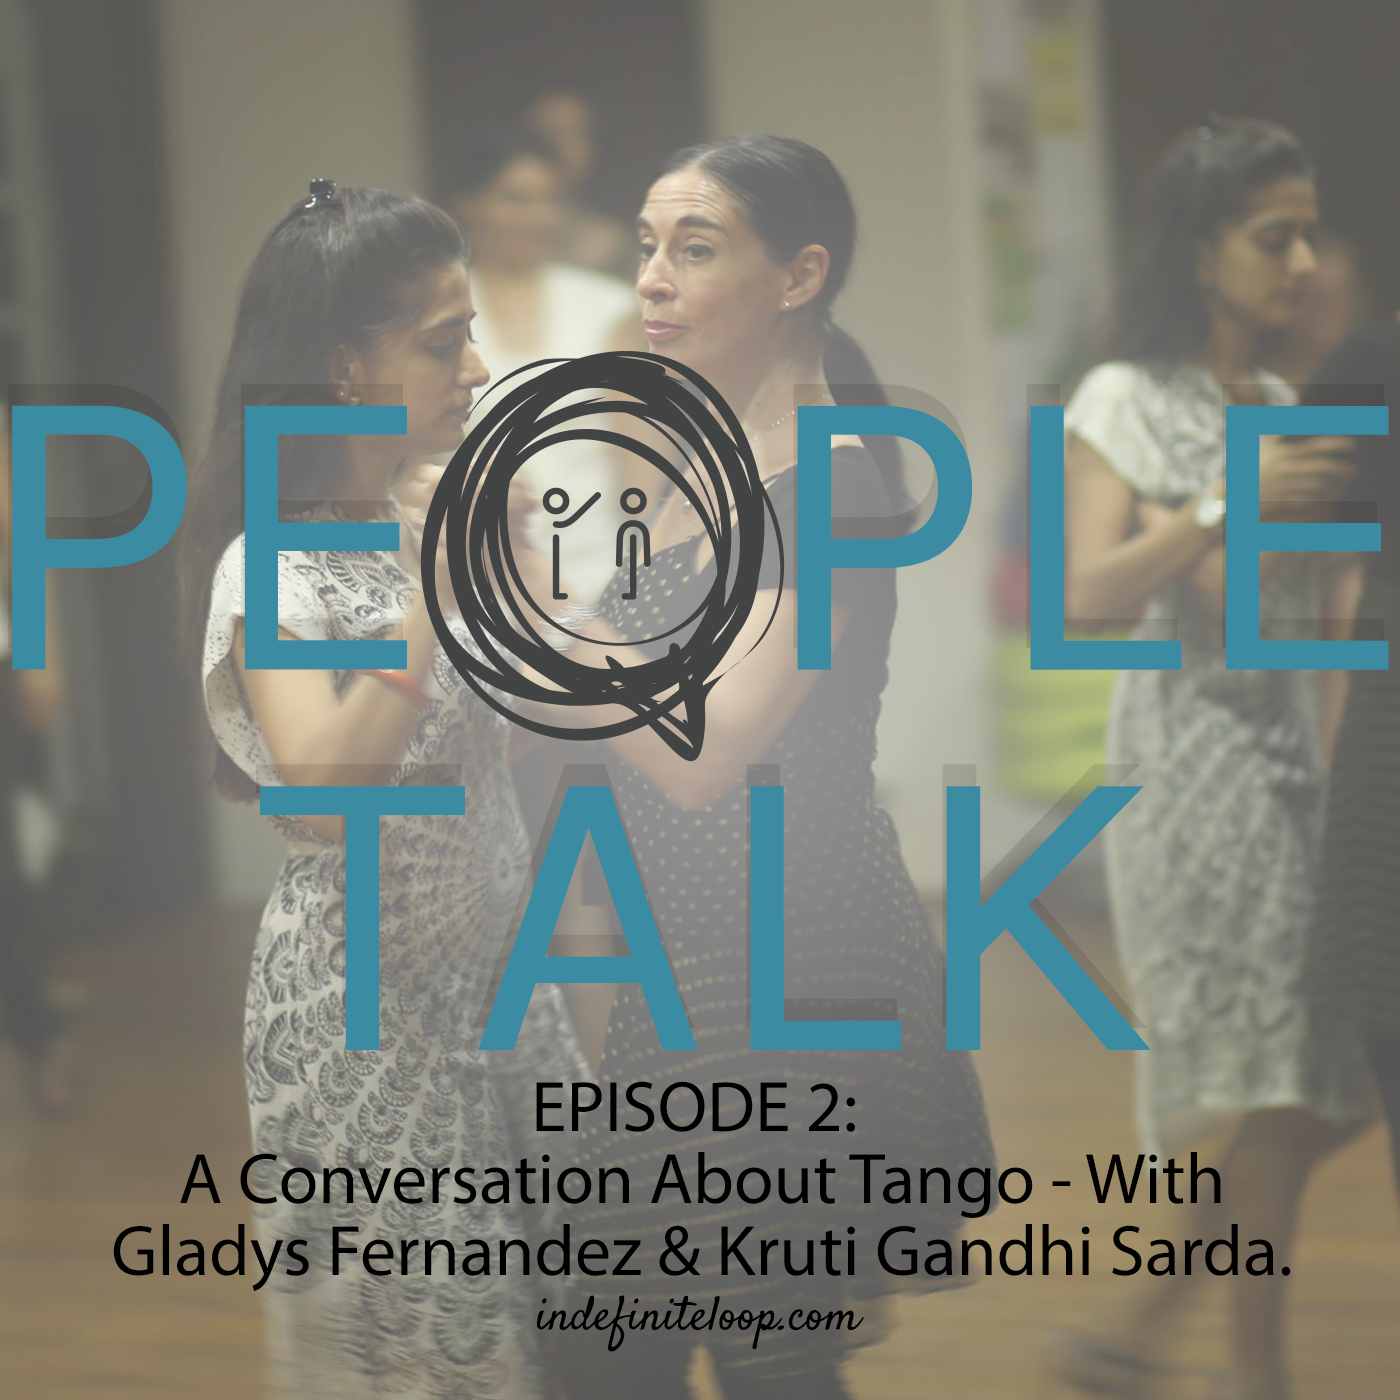 People Talk - Podcast Series - Episode 1